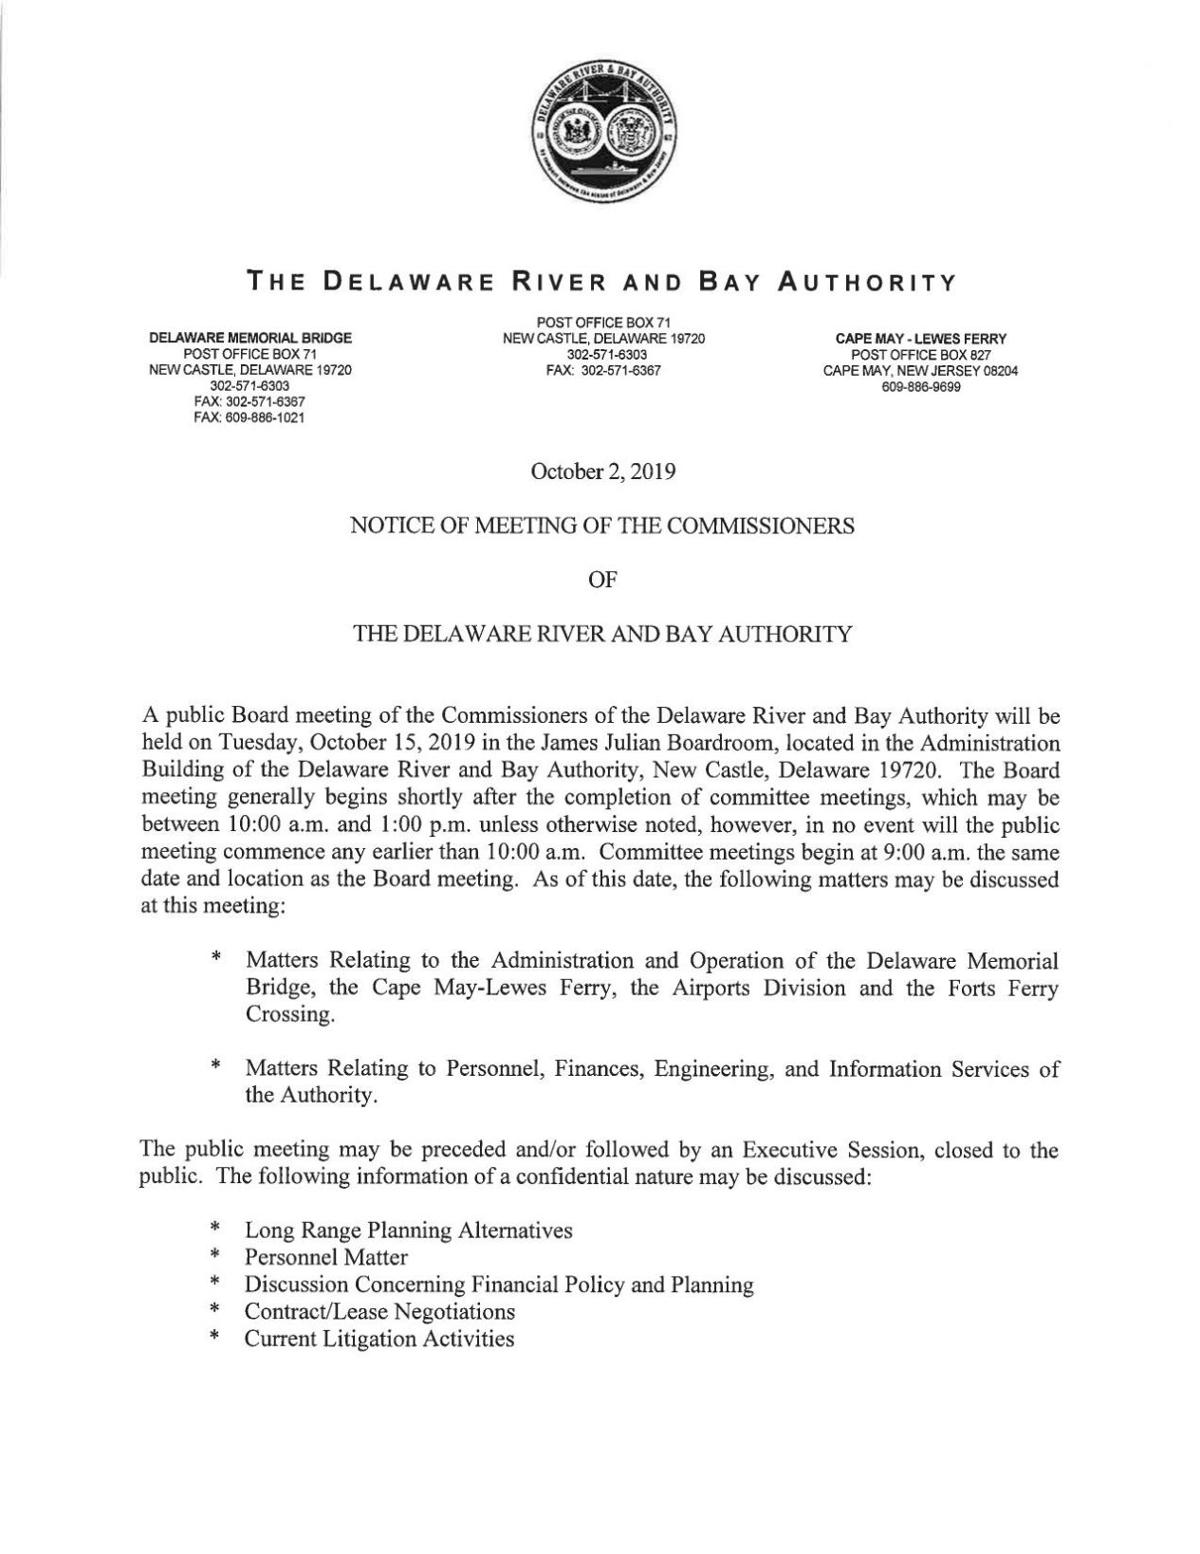 Delaware River and Bay Authority Commissioners Agenda Oct. 15, 2019